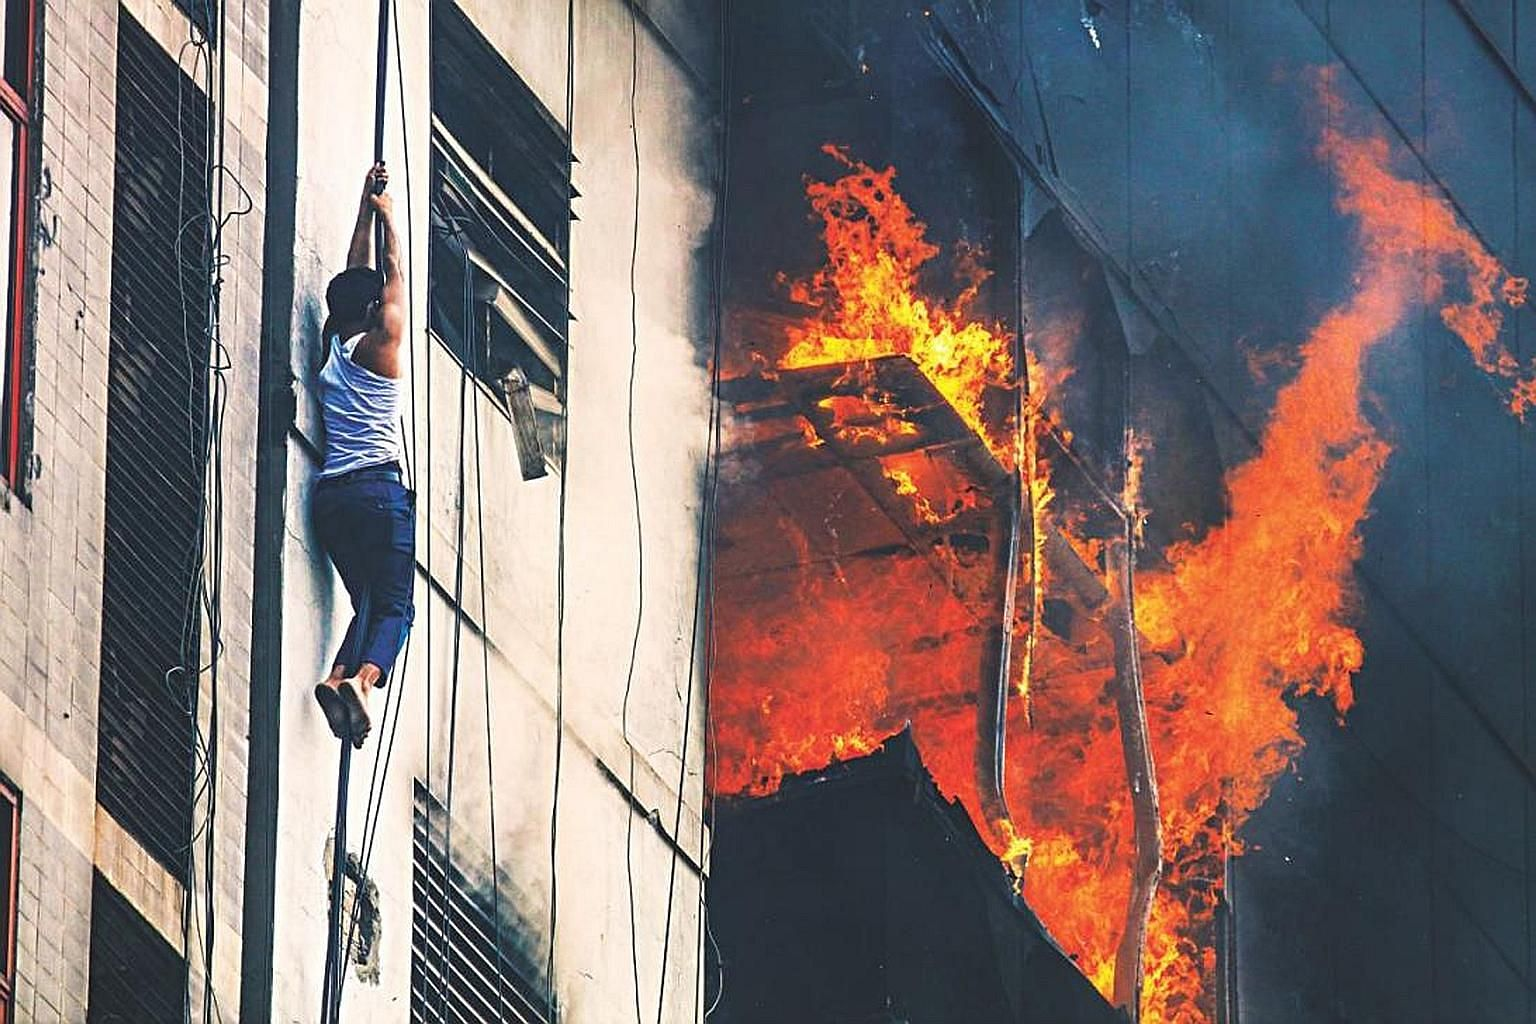 A man trying to escape a fire at FR Tower in Dhaka on March 28 - 26 people died and about 100 were hurt. Fires are not uncommon in densely populated Bangladesh, owing to lax safety regulations and poor building conditions.